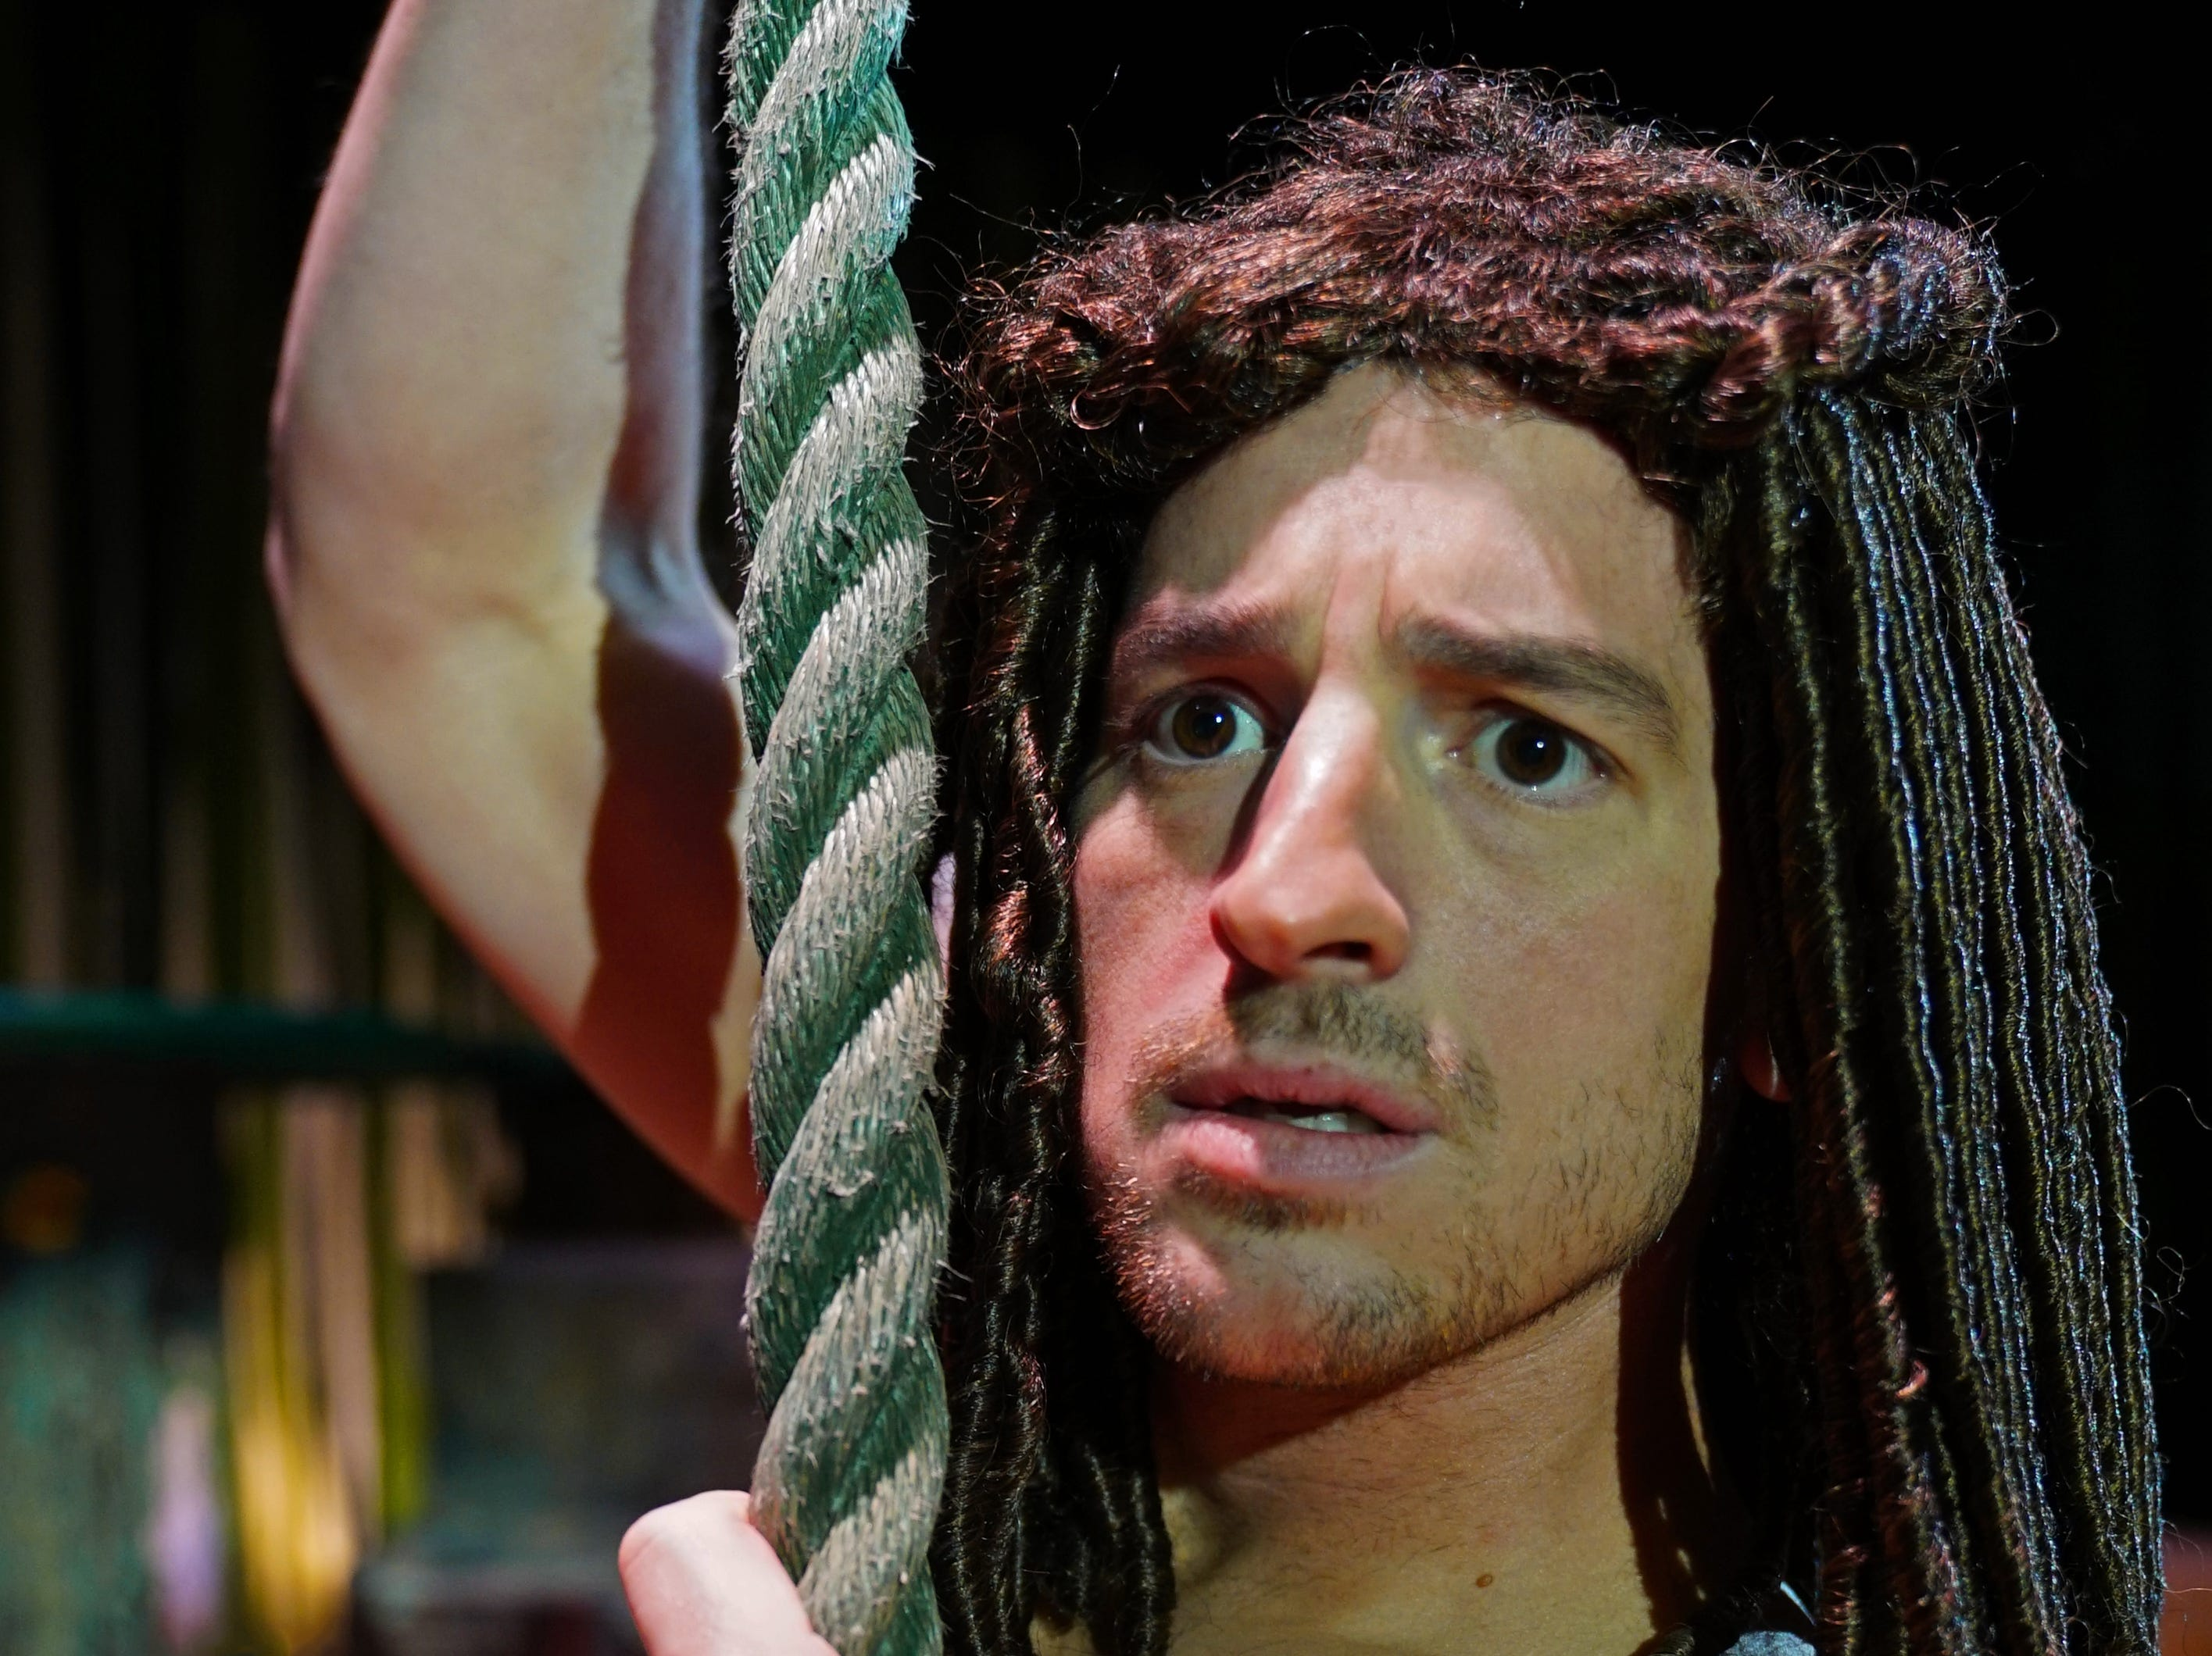 """Joe Horton swings onto the stage in the title role in """"Tarzan,"""" the stage musical based on the Disney film on stage at the Henegar Center in Melbourne through March 24th. For tickets or more information, visit henegar.org"""